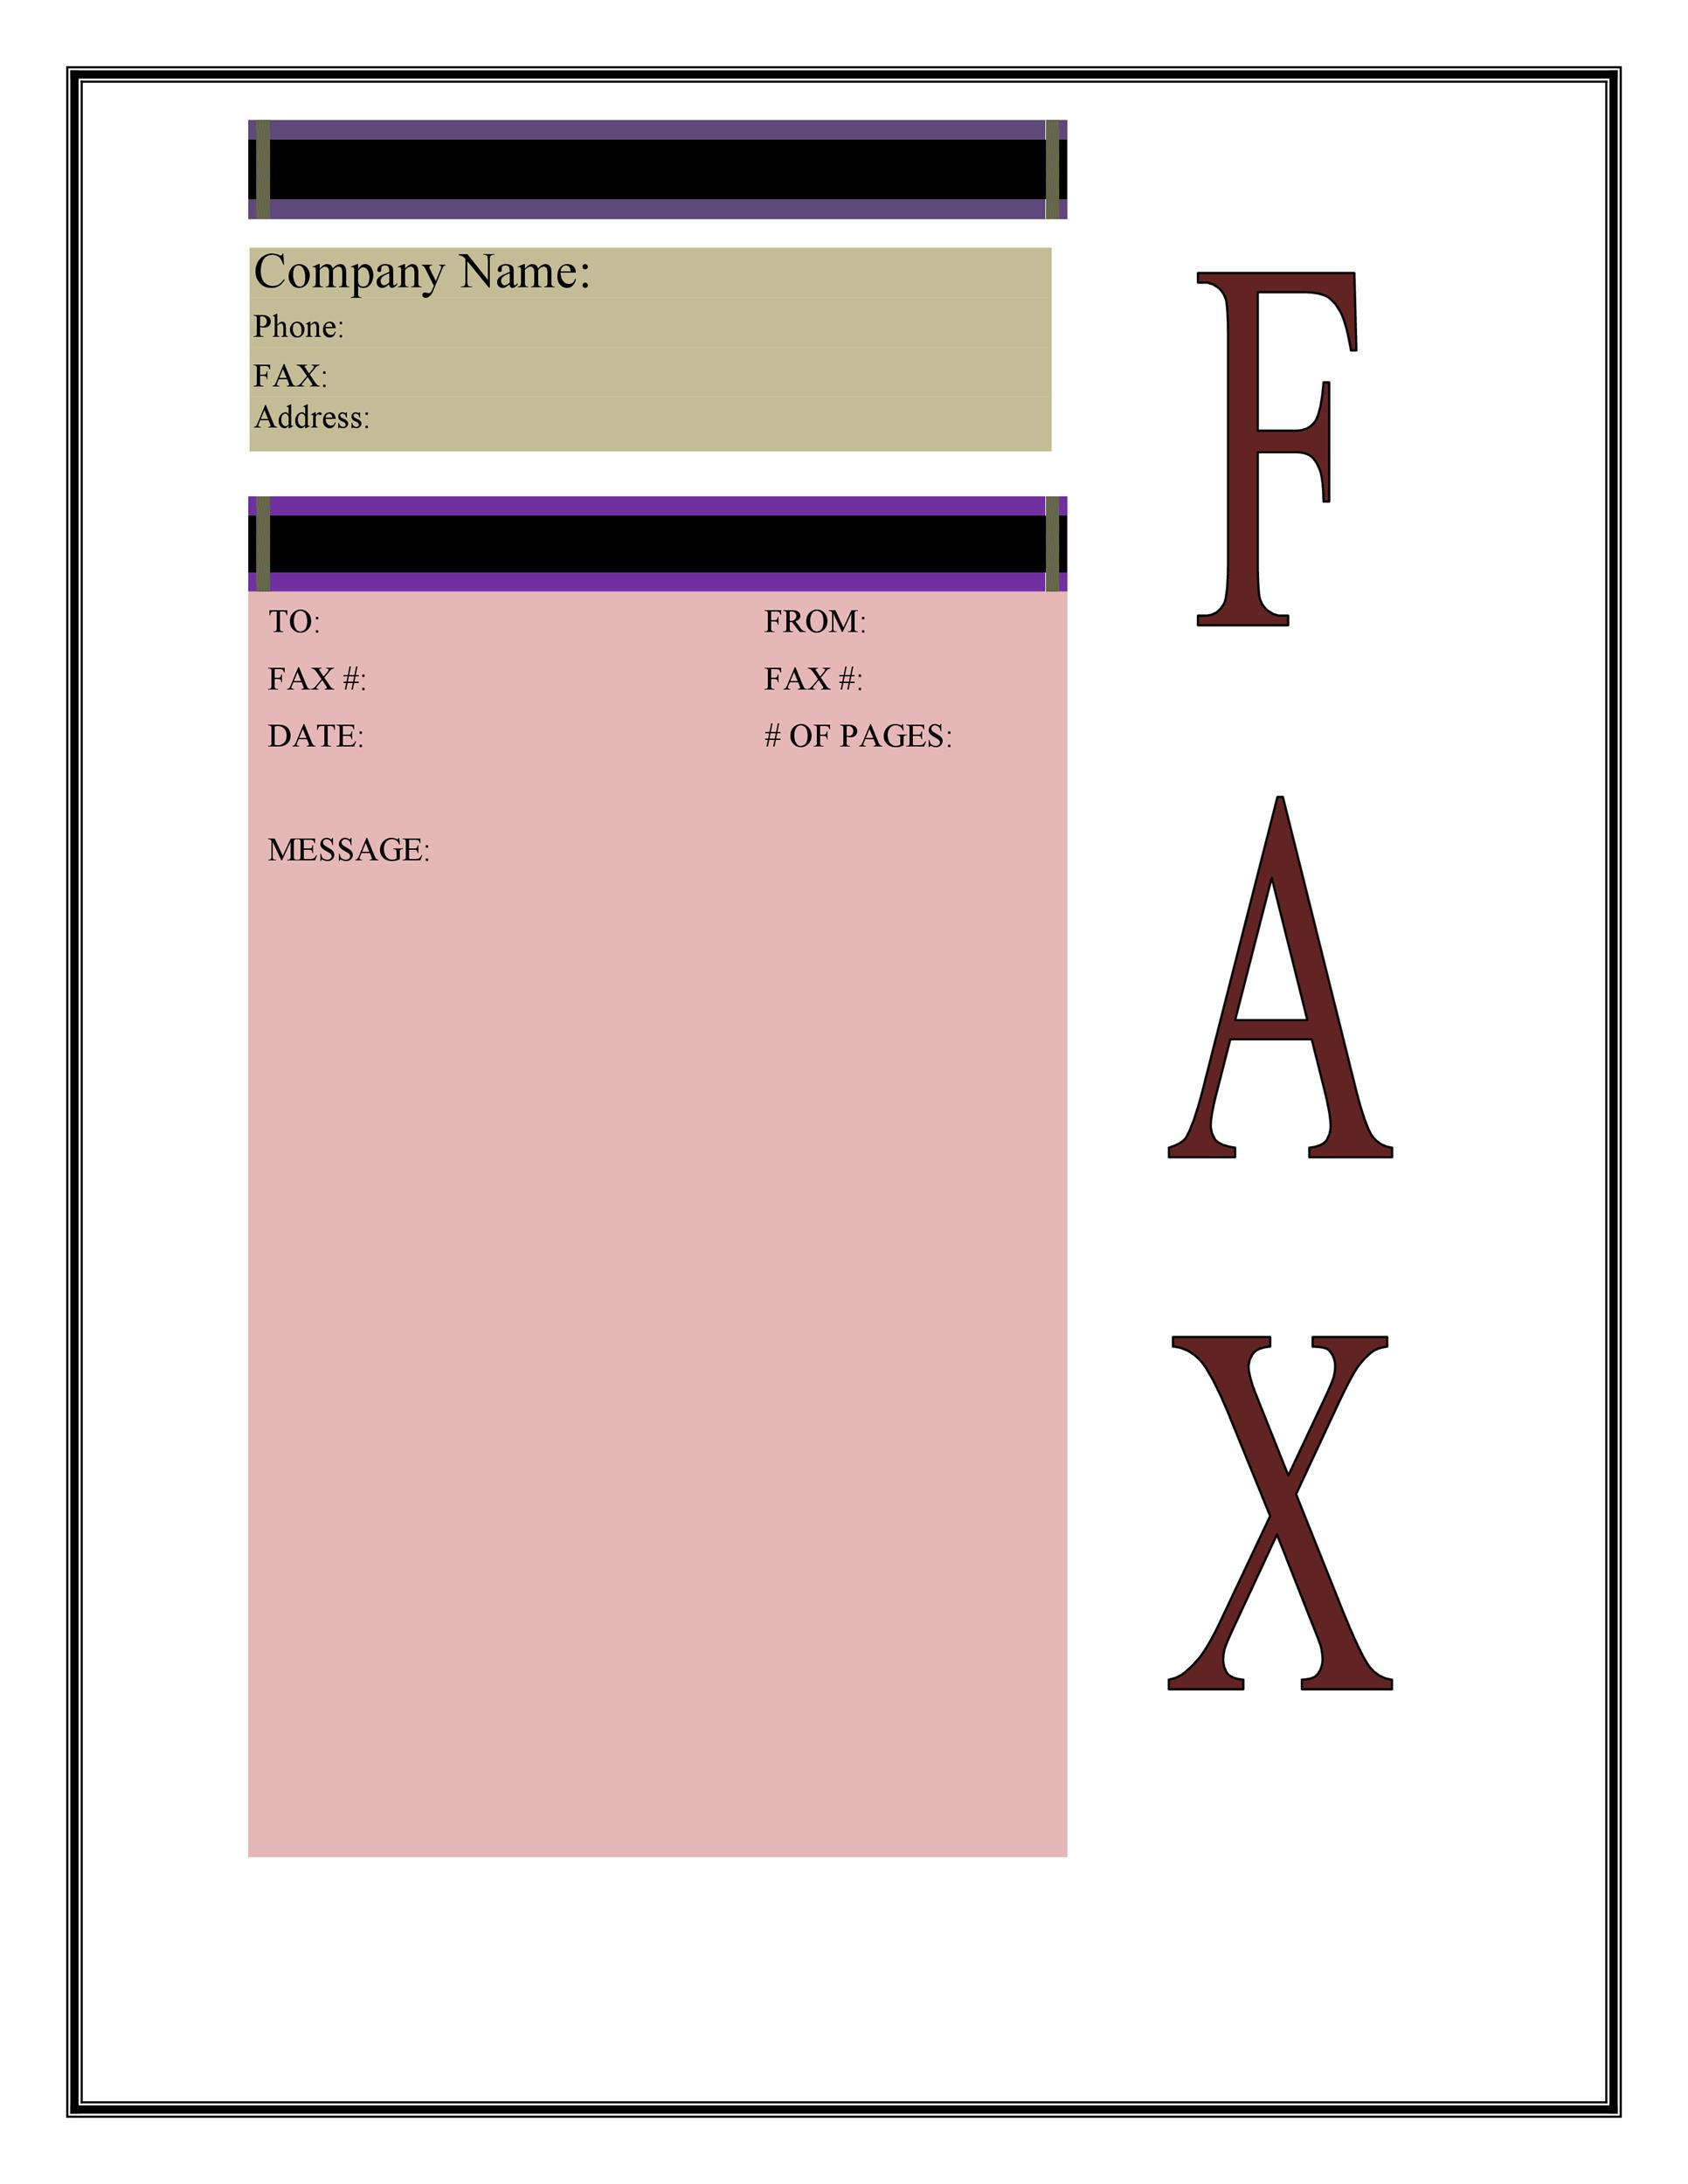 Fax Cover Sheet Template 27